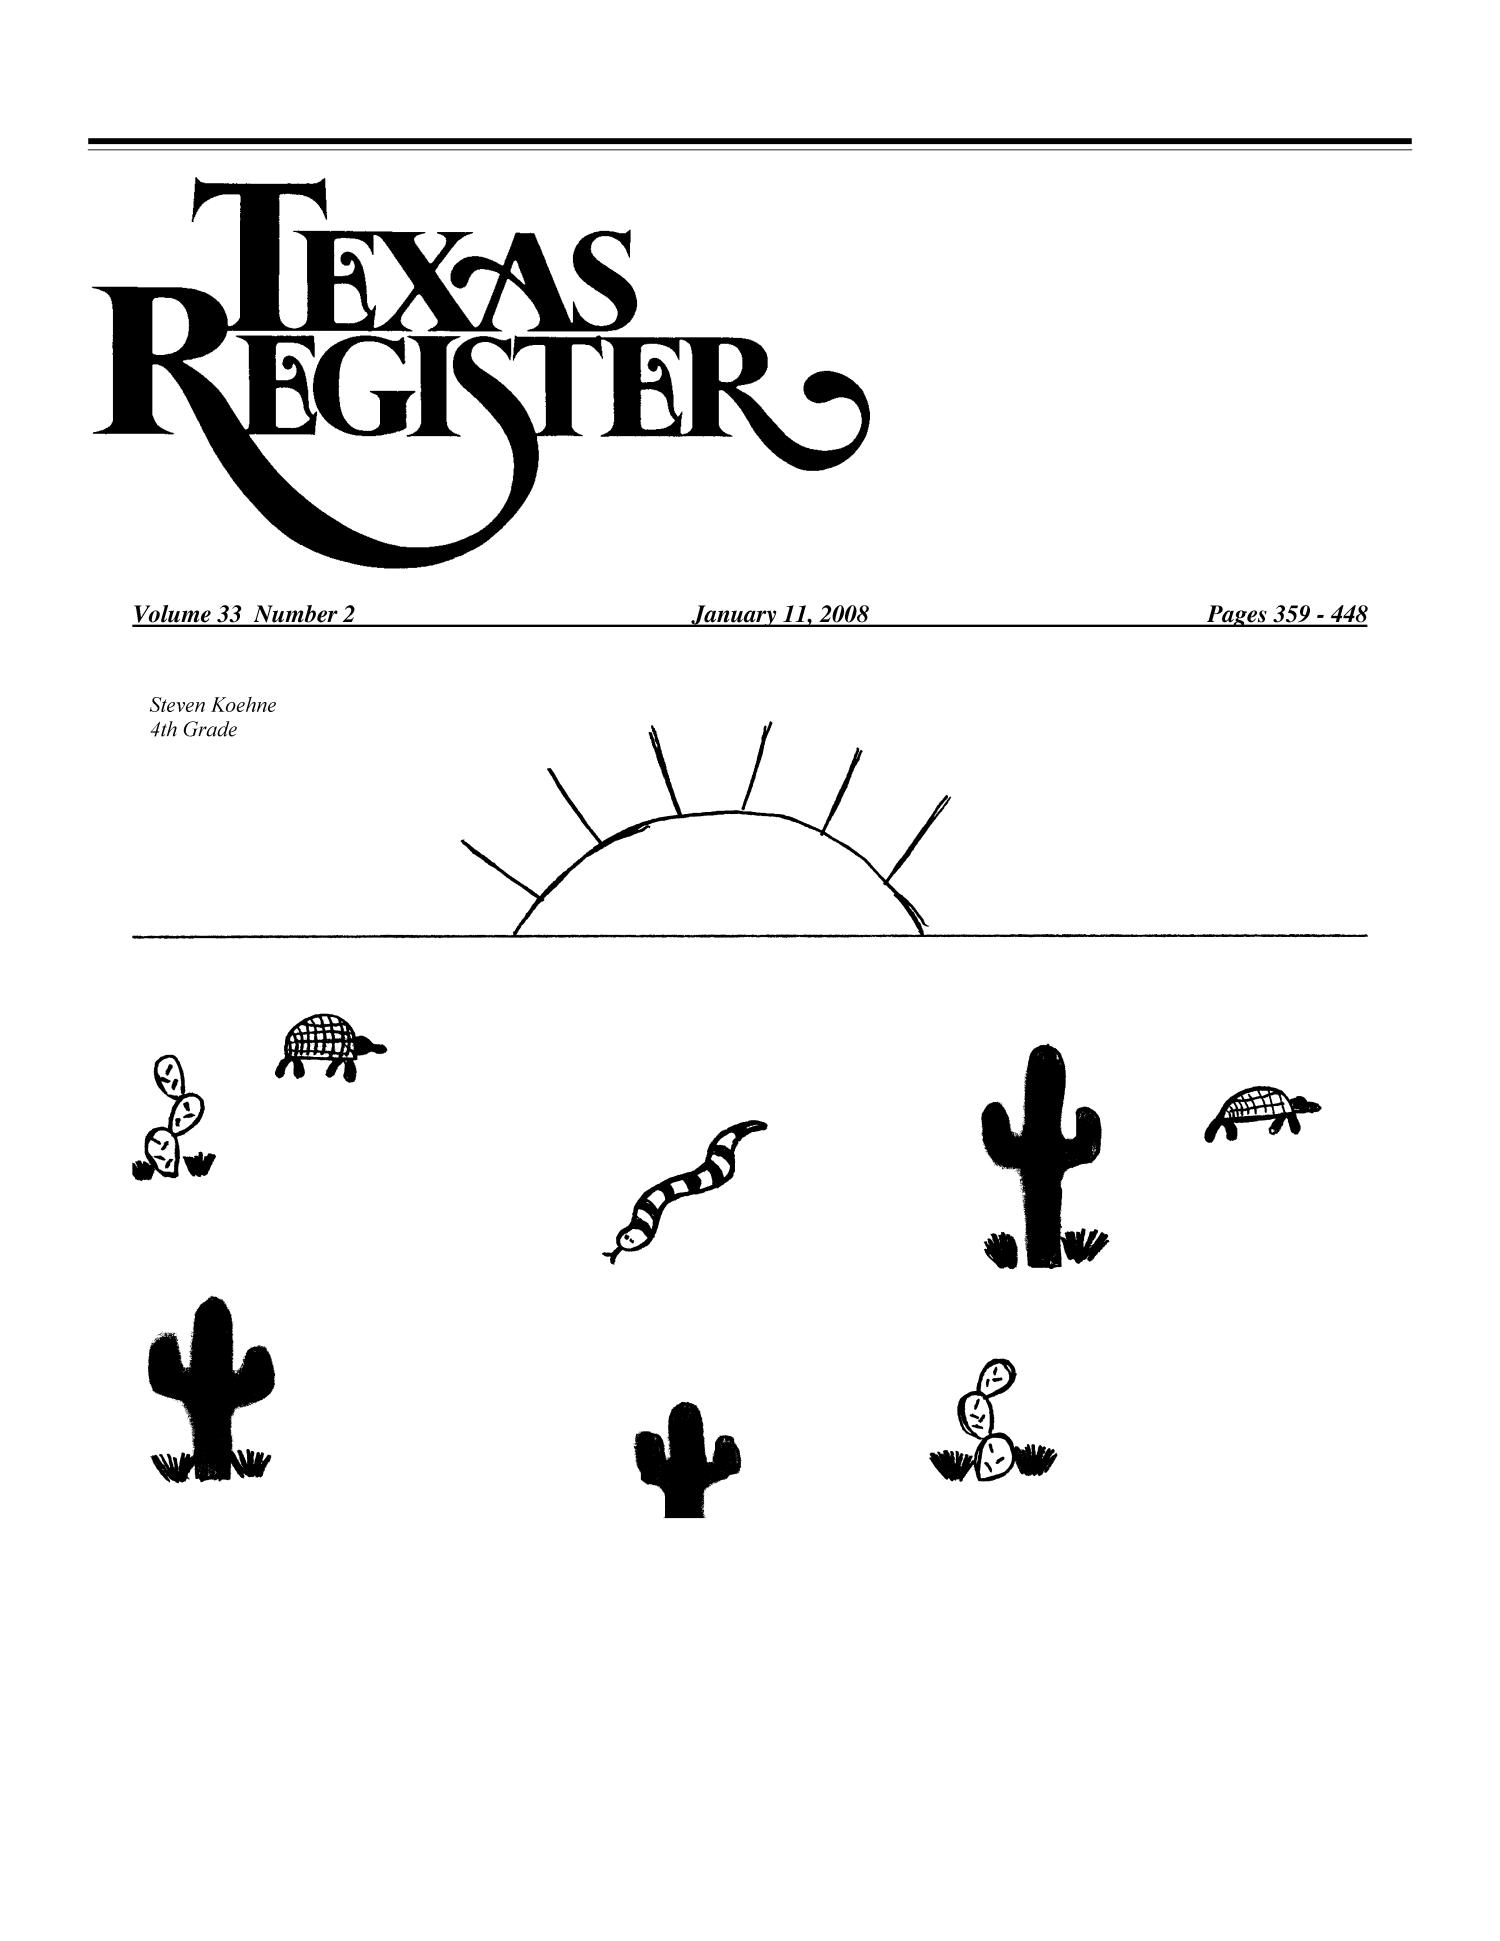 Texas Register, Volume 33, Number 2, Pages 359-448